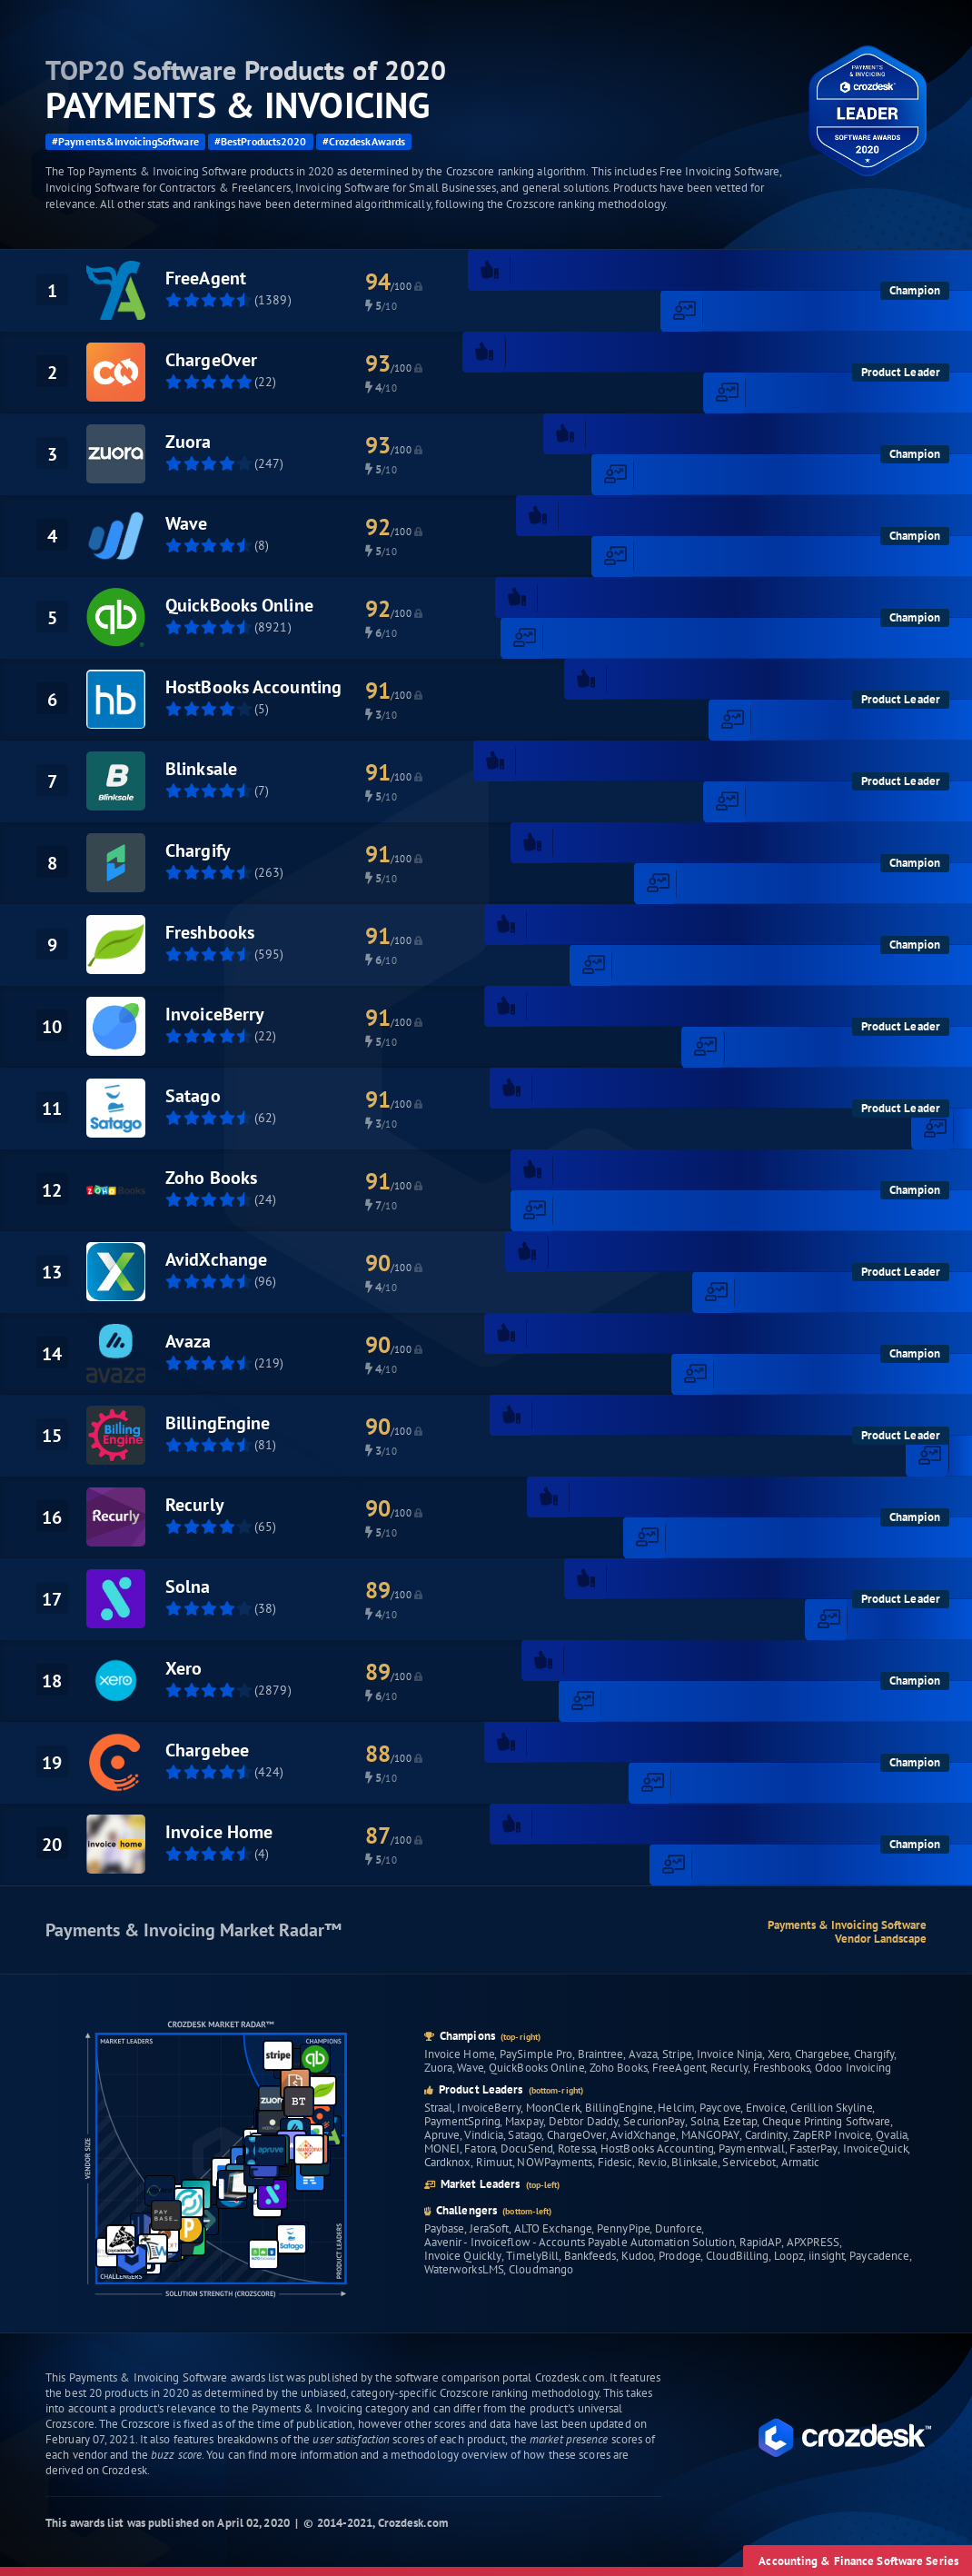 Top 20 Payments & Invoicing Software of 2020 Infographic